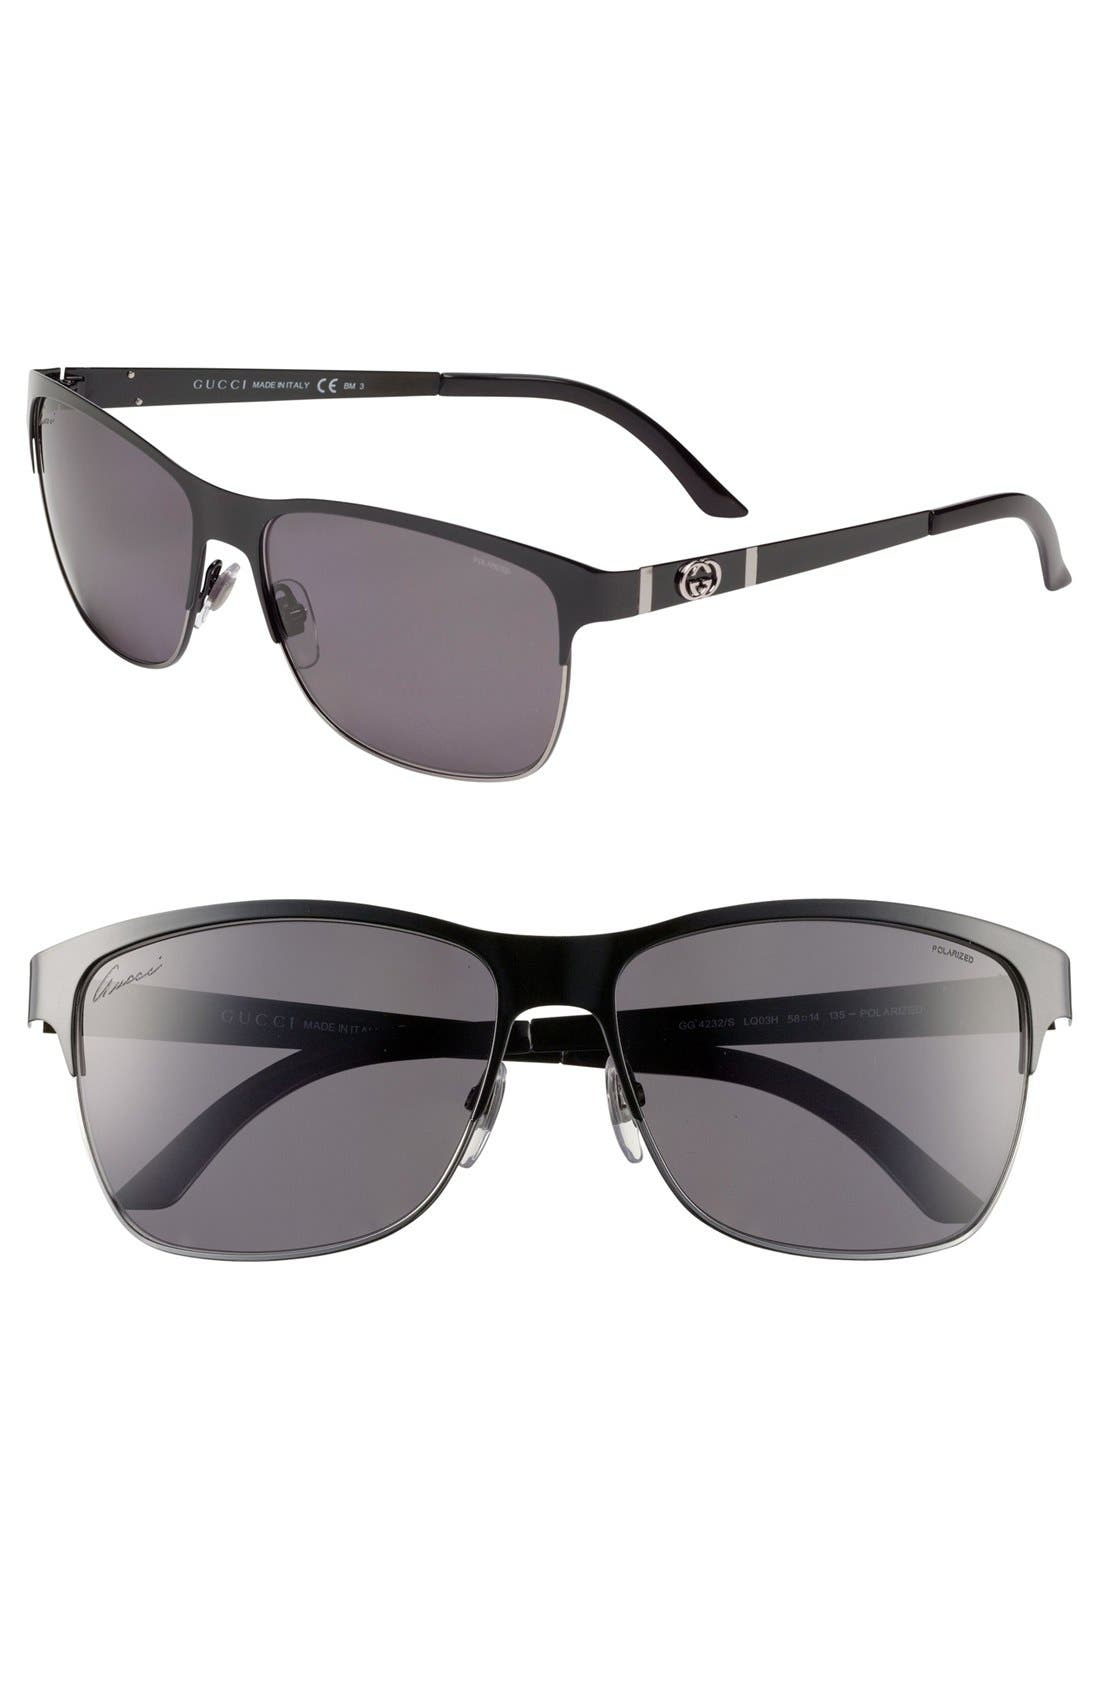 Main Image - Gucci 58mm Polarized Stainless Steel Sunglasses